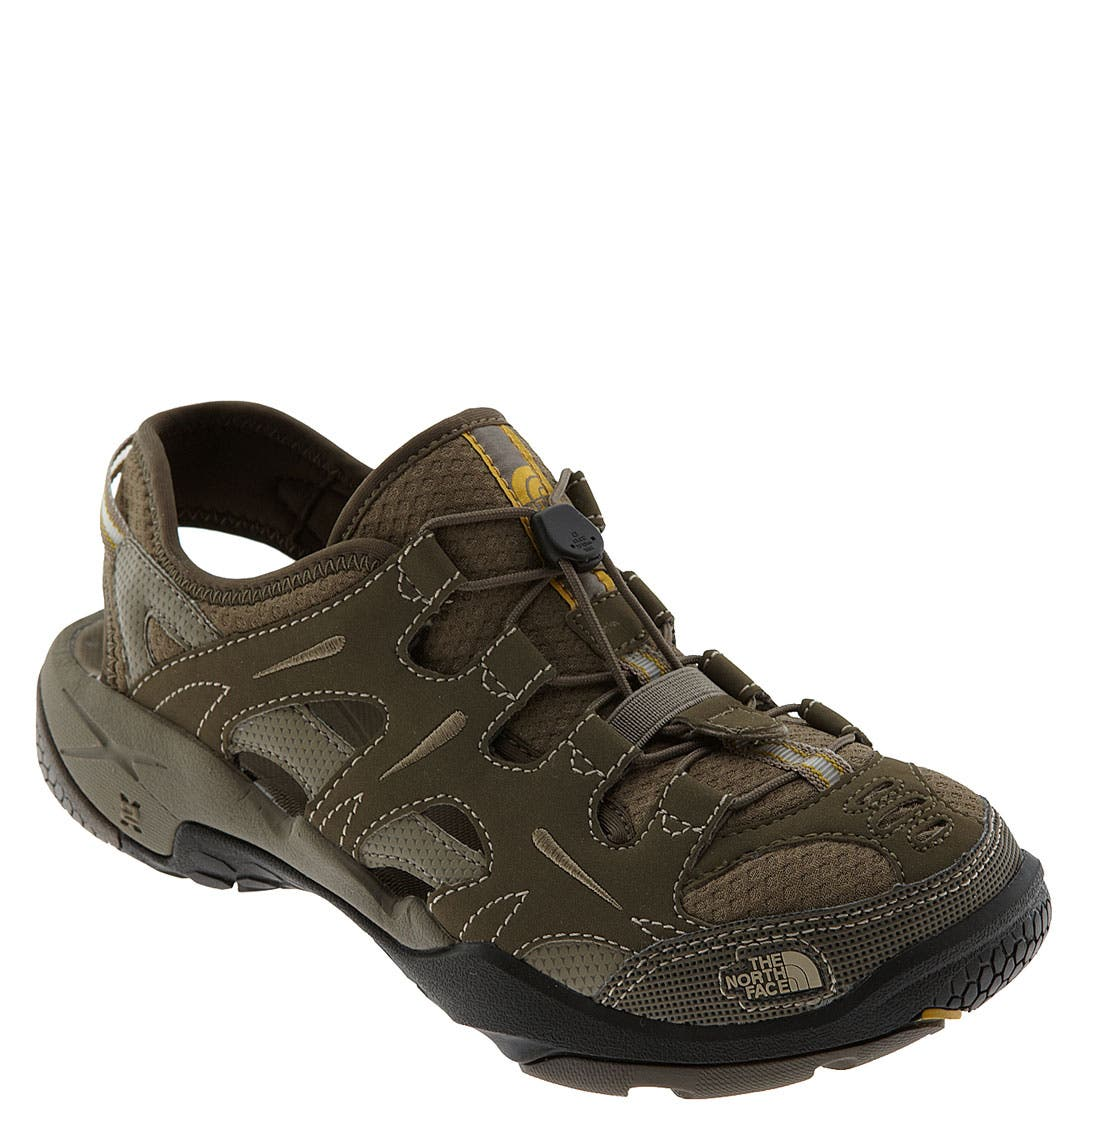 Alternate Image 1 Selected - The North Face 'Hedgefrog' Sandal